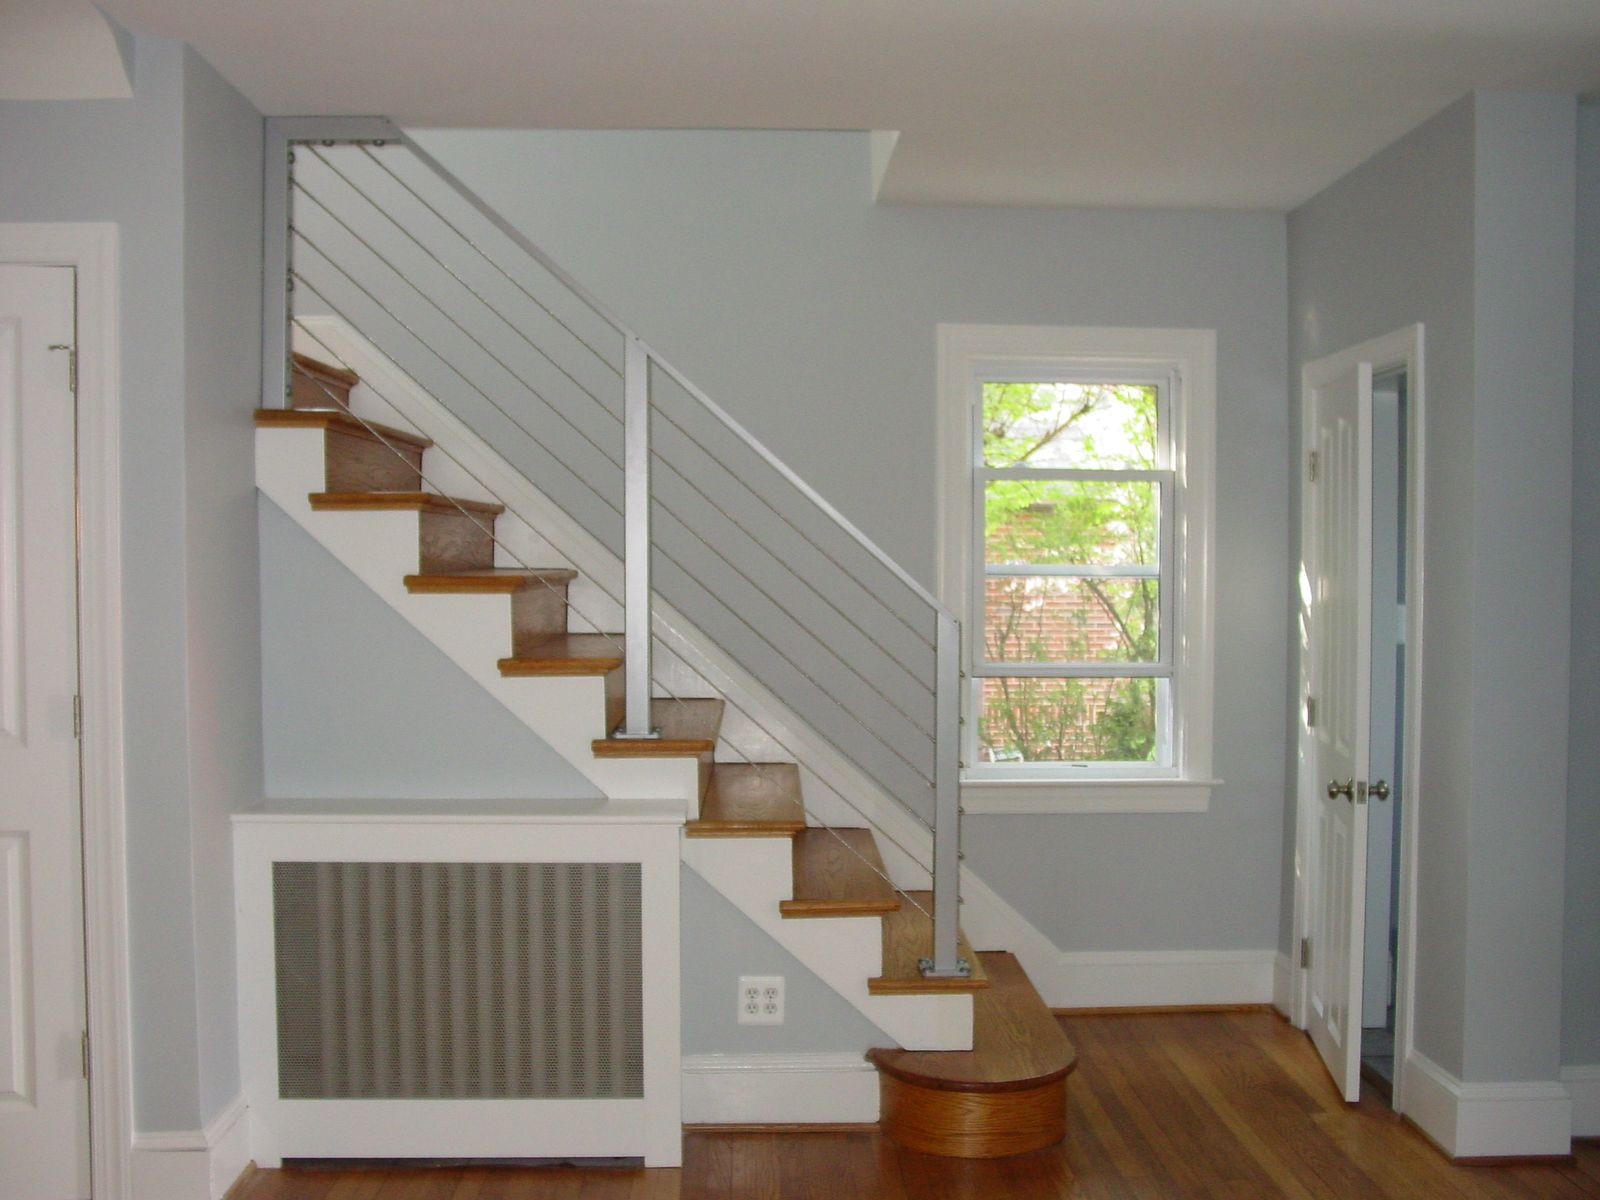 Stair Railing Ideas | Cook Bros. #1 Design Build Remodeling Contractor In  Arlington Virginia